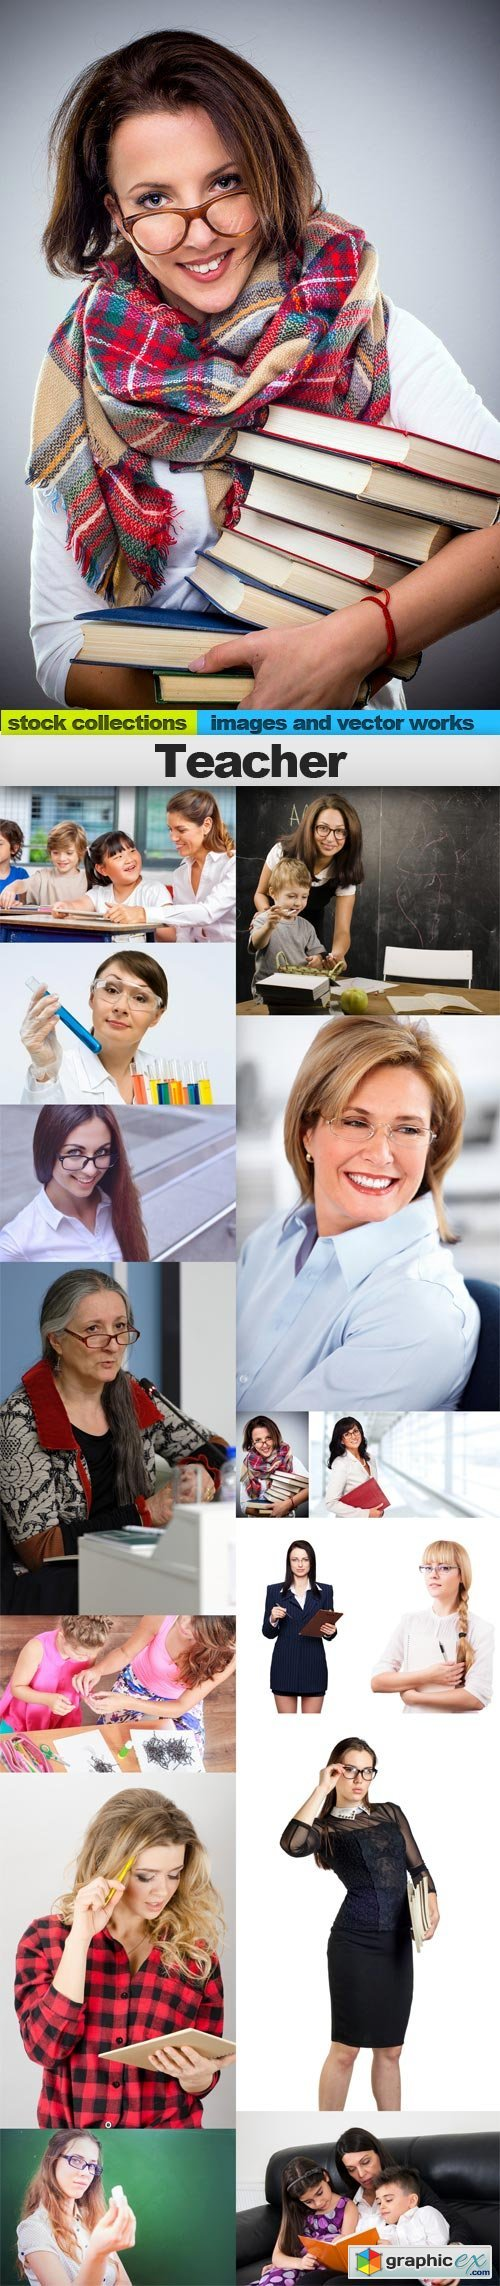 Teacher, 15 x UHQ JPEG